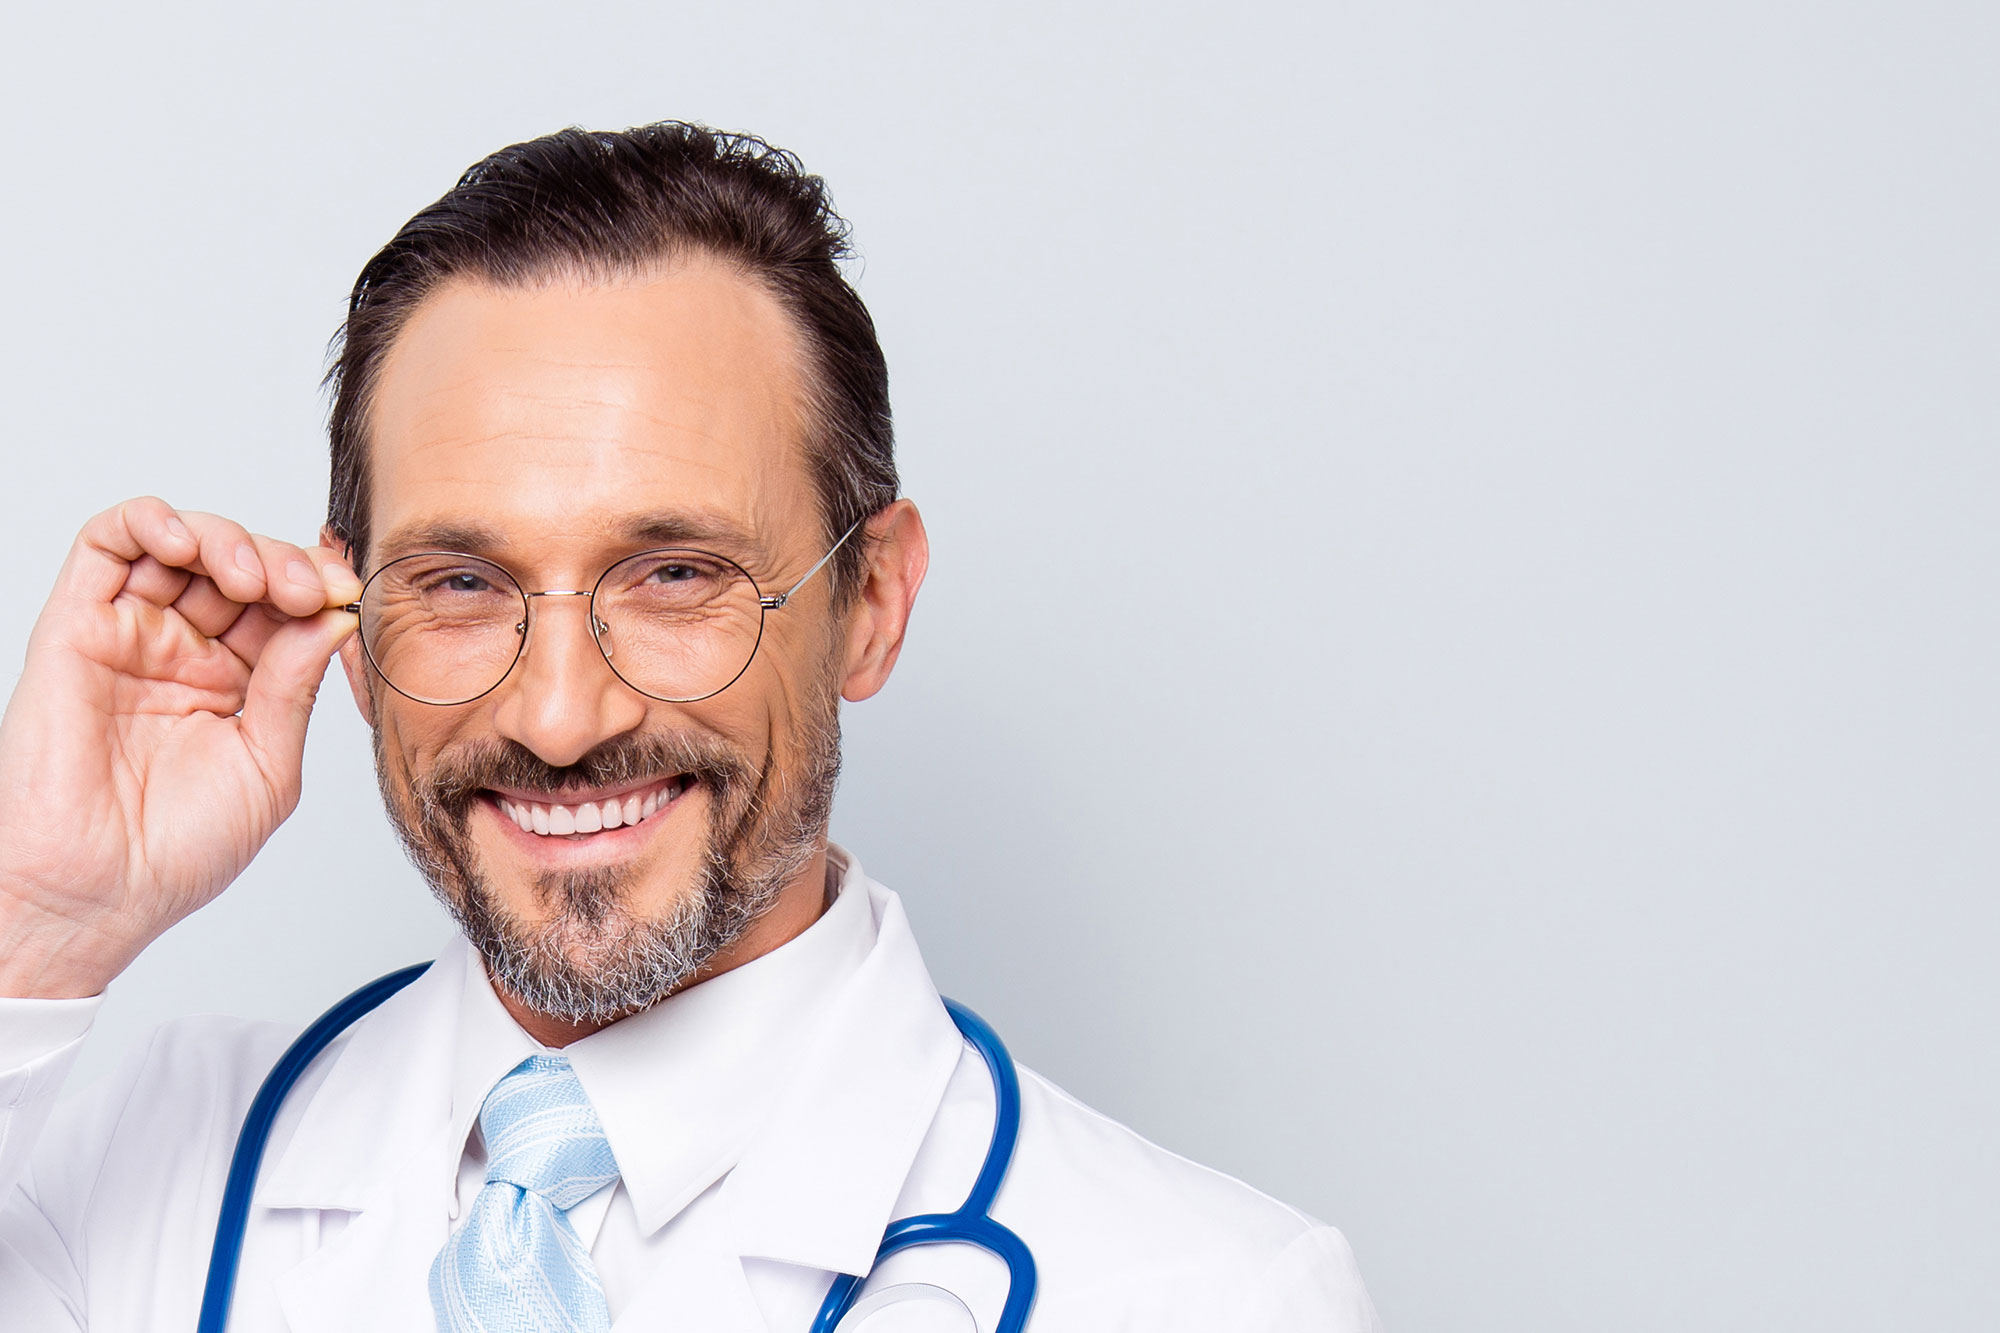 physician smiling